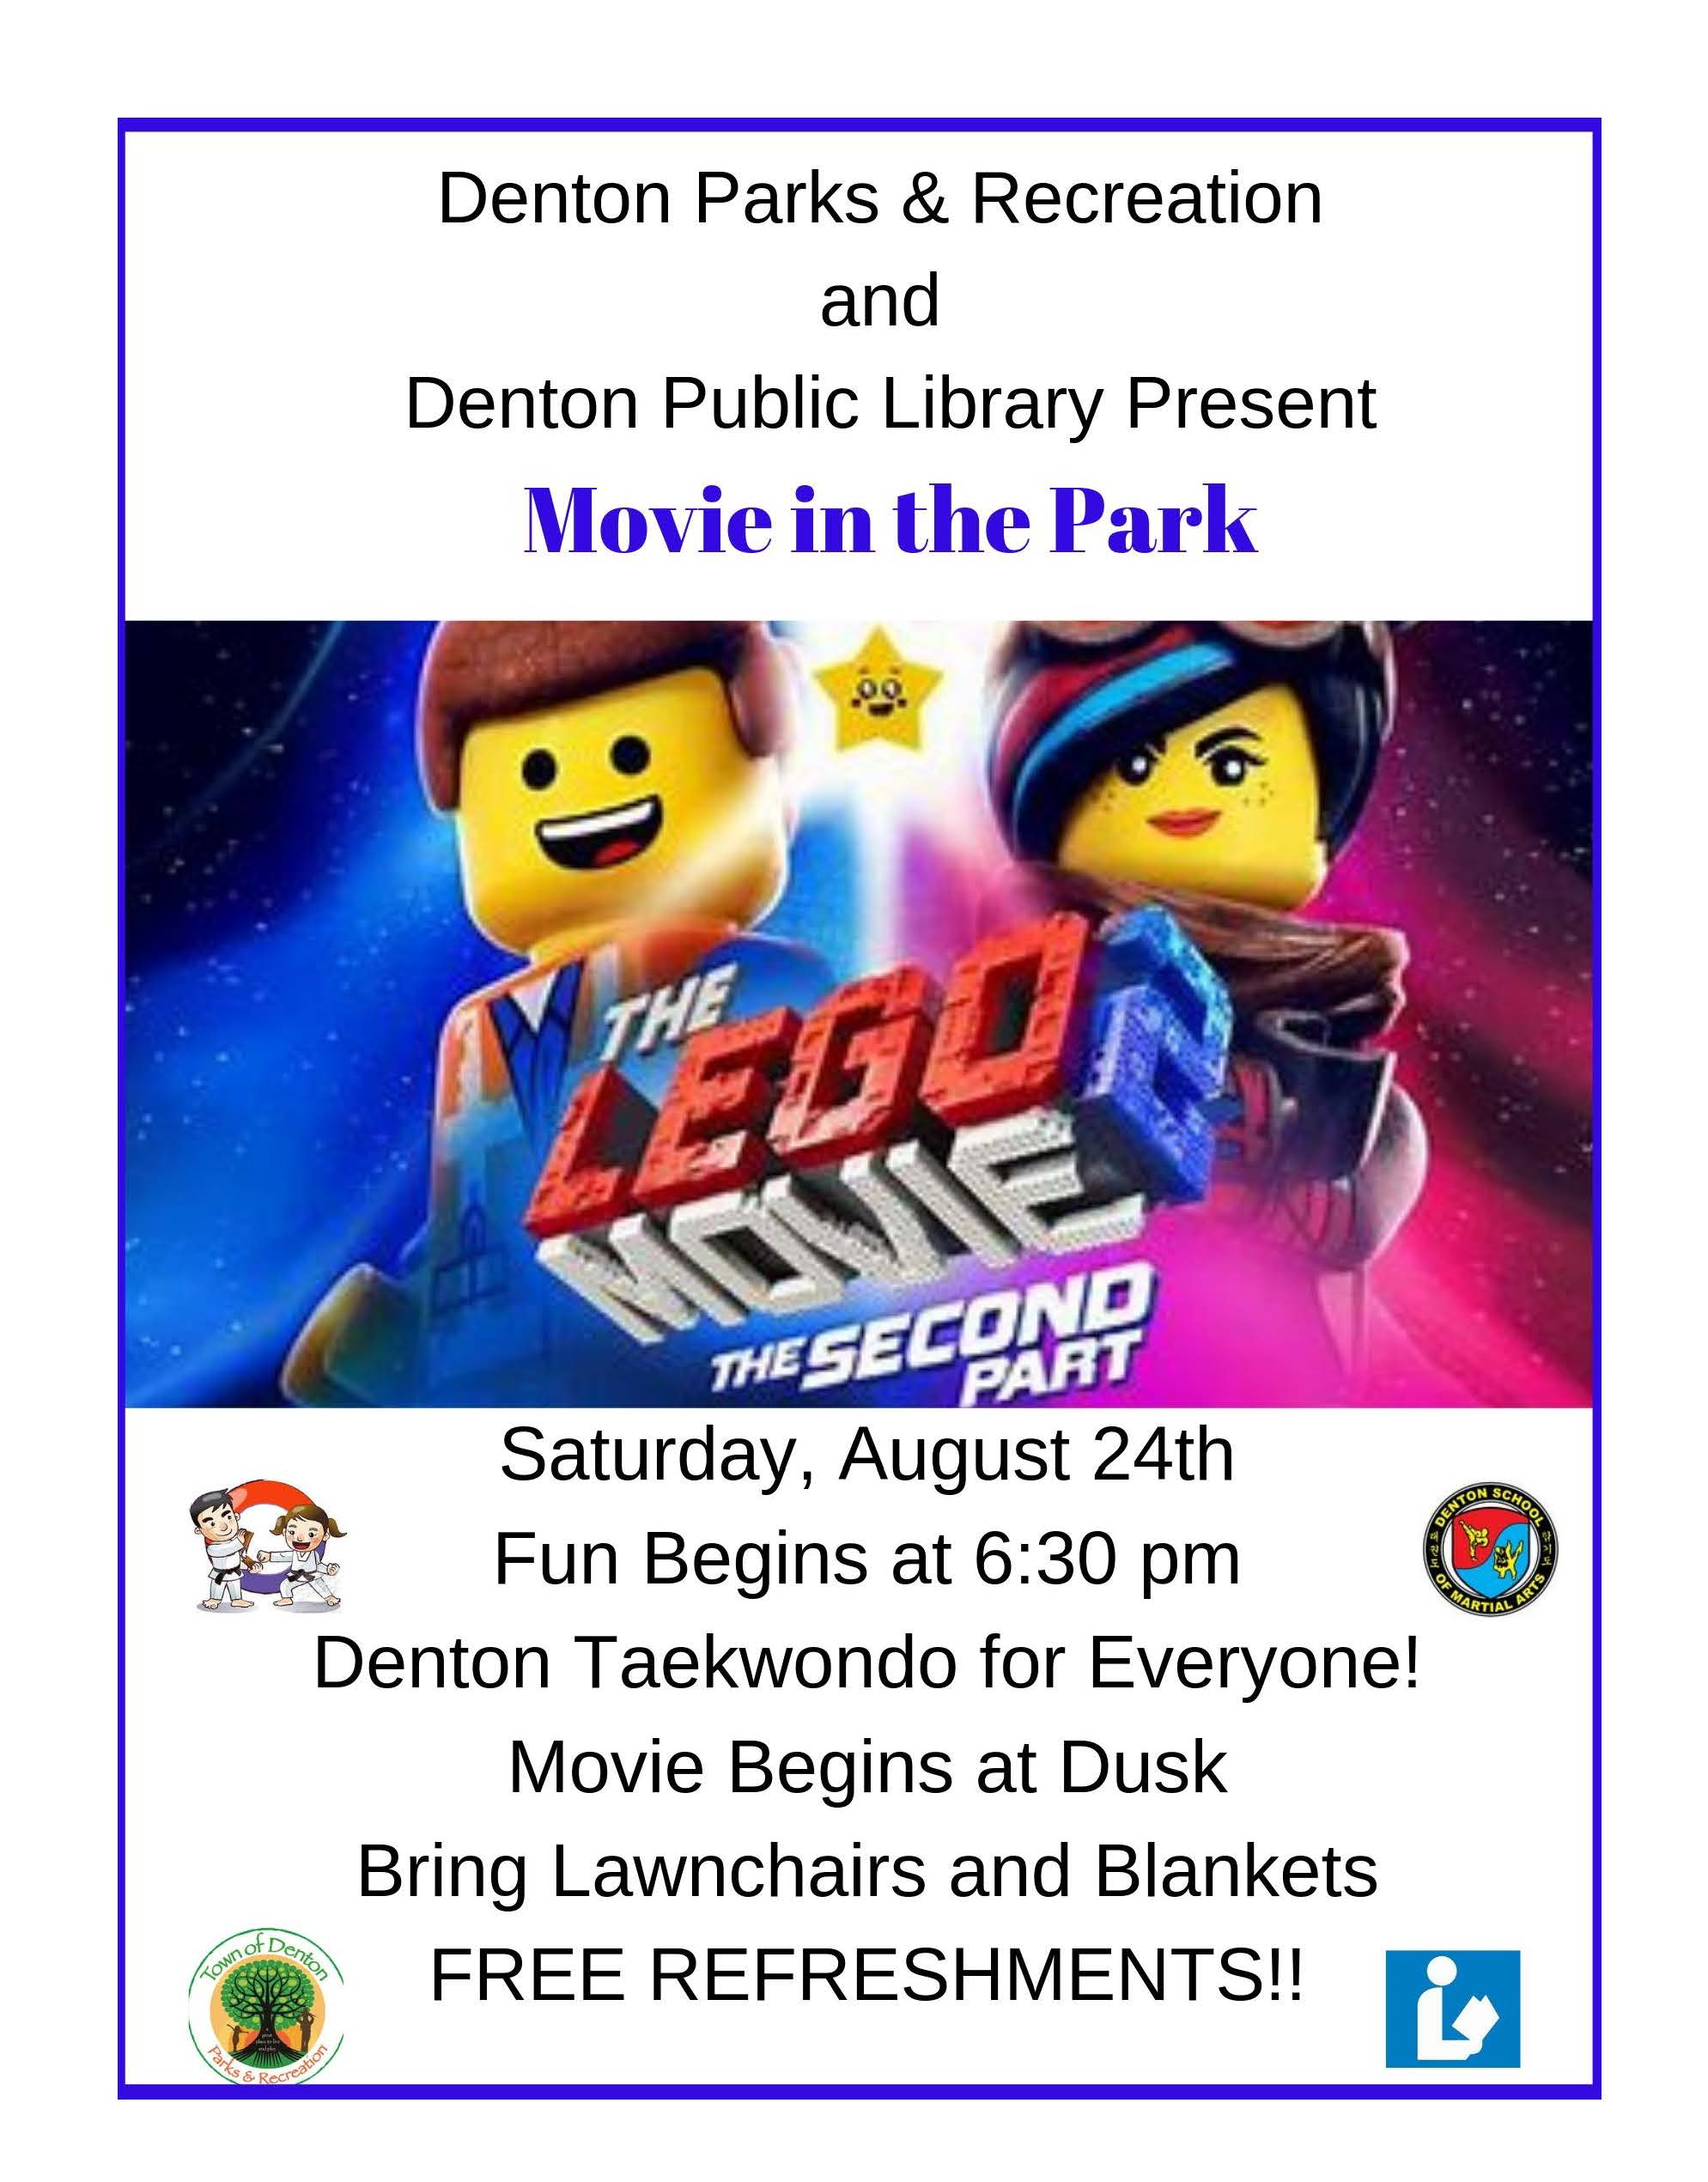 Movie in Park Lego2